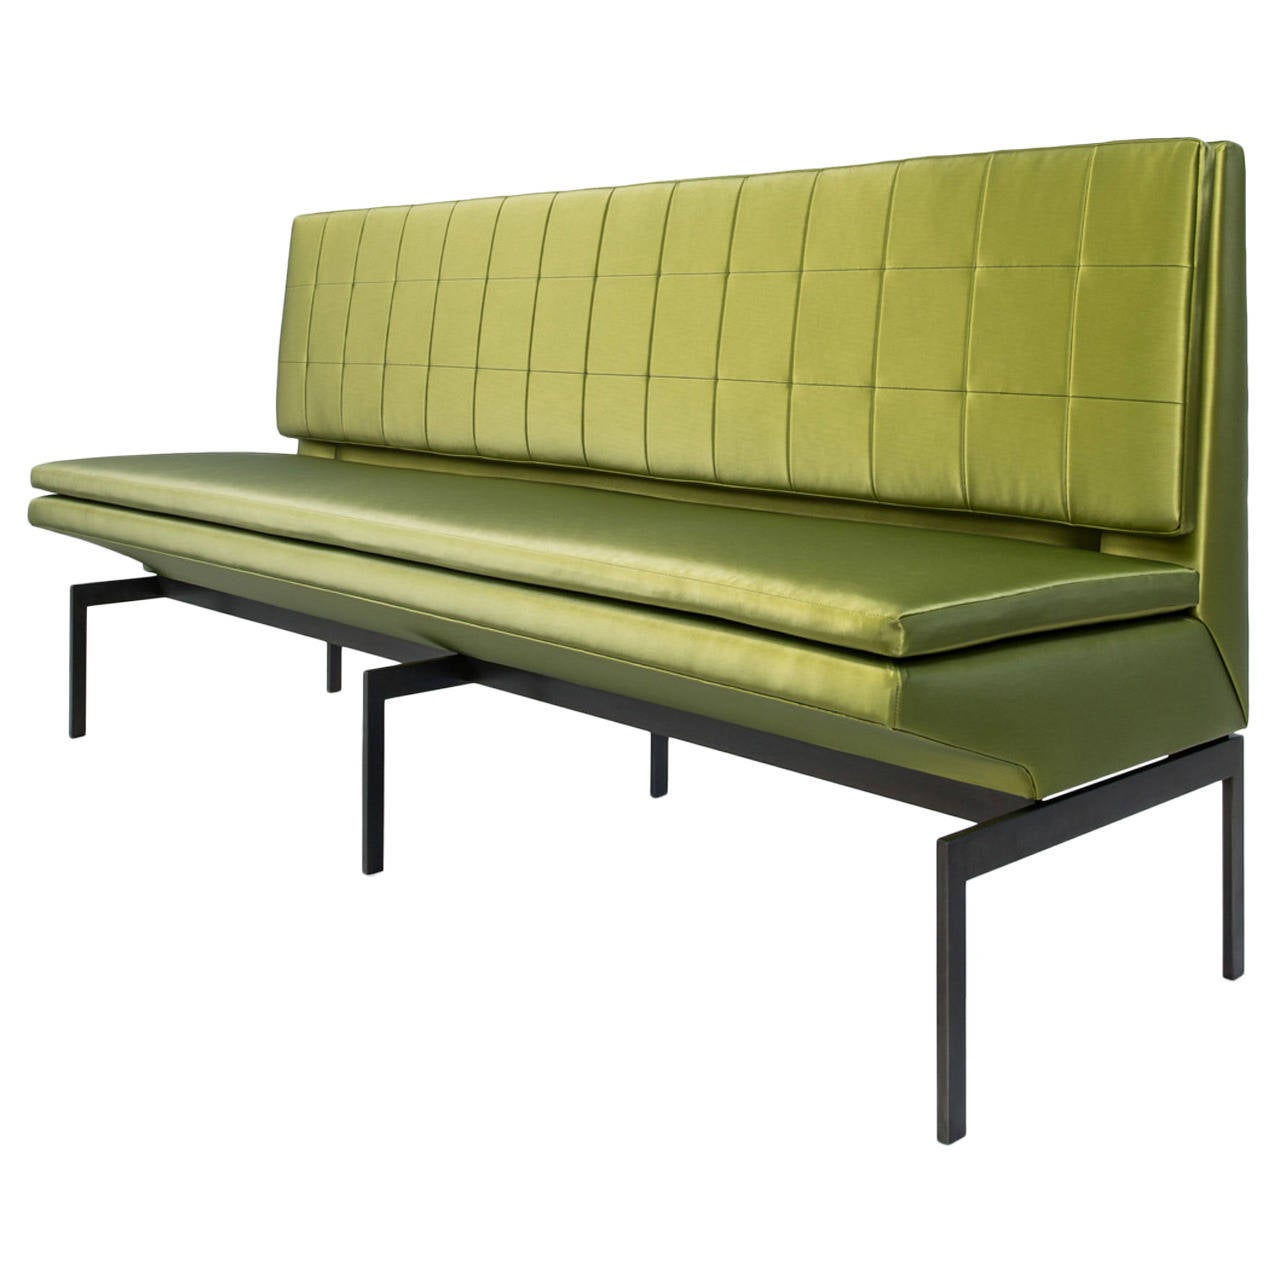 Mancini Banquette, Quilted Green Satin Back, Blackened Steel Base